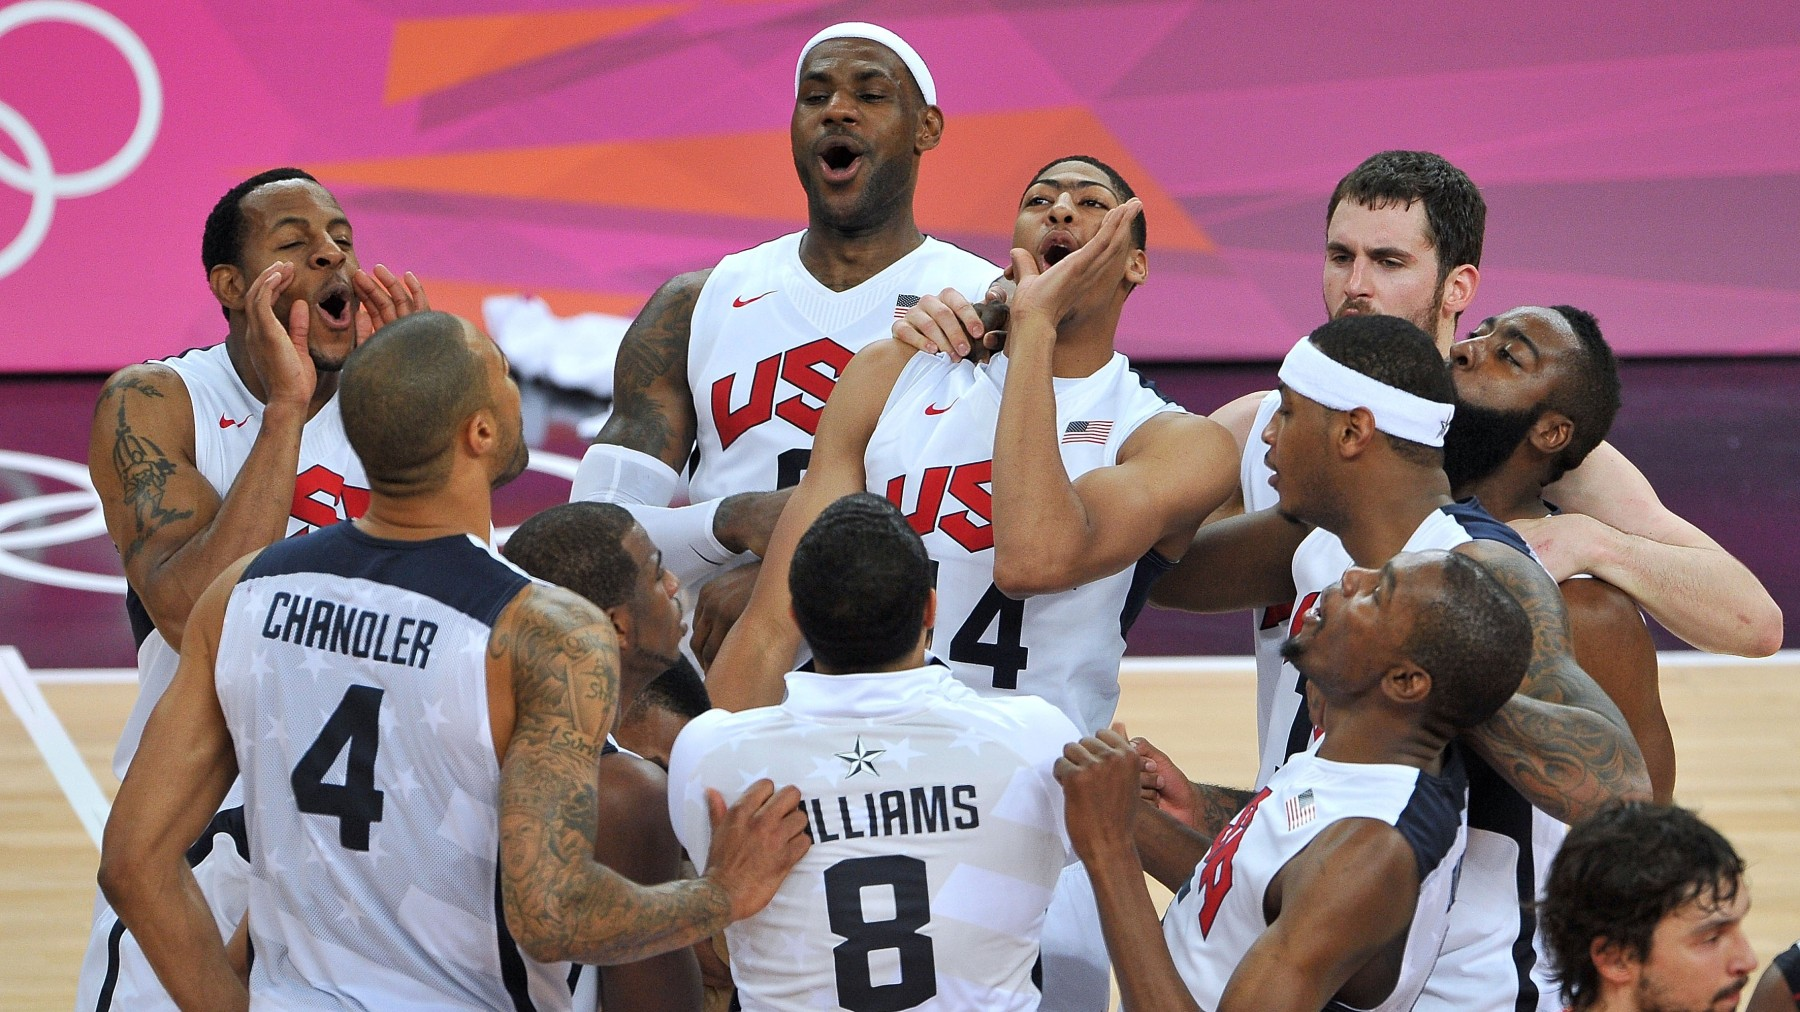 The United States players celebrate winning the Men's Basketball gold medal game at the London 2012 Olympics Games. (Pascal Le Segretain/Getty Images)